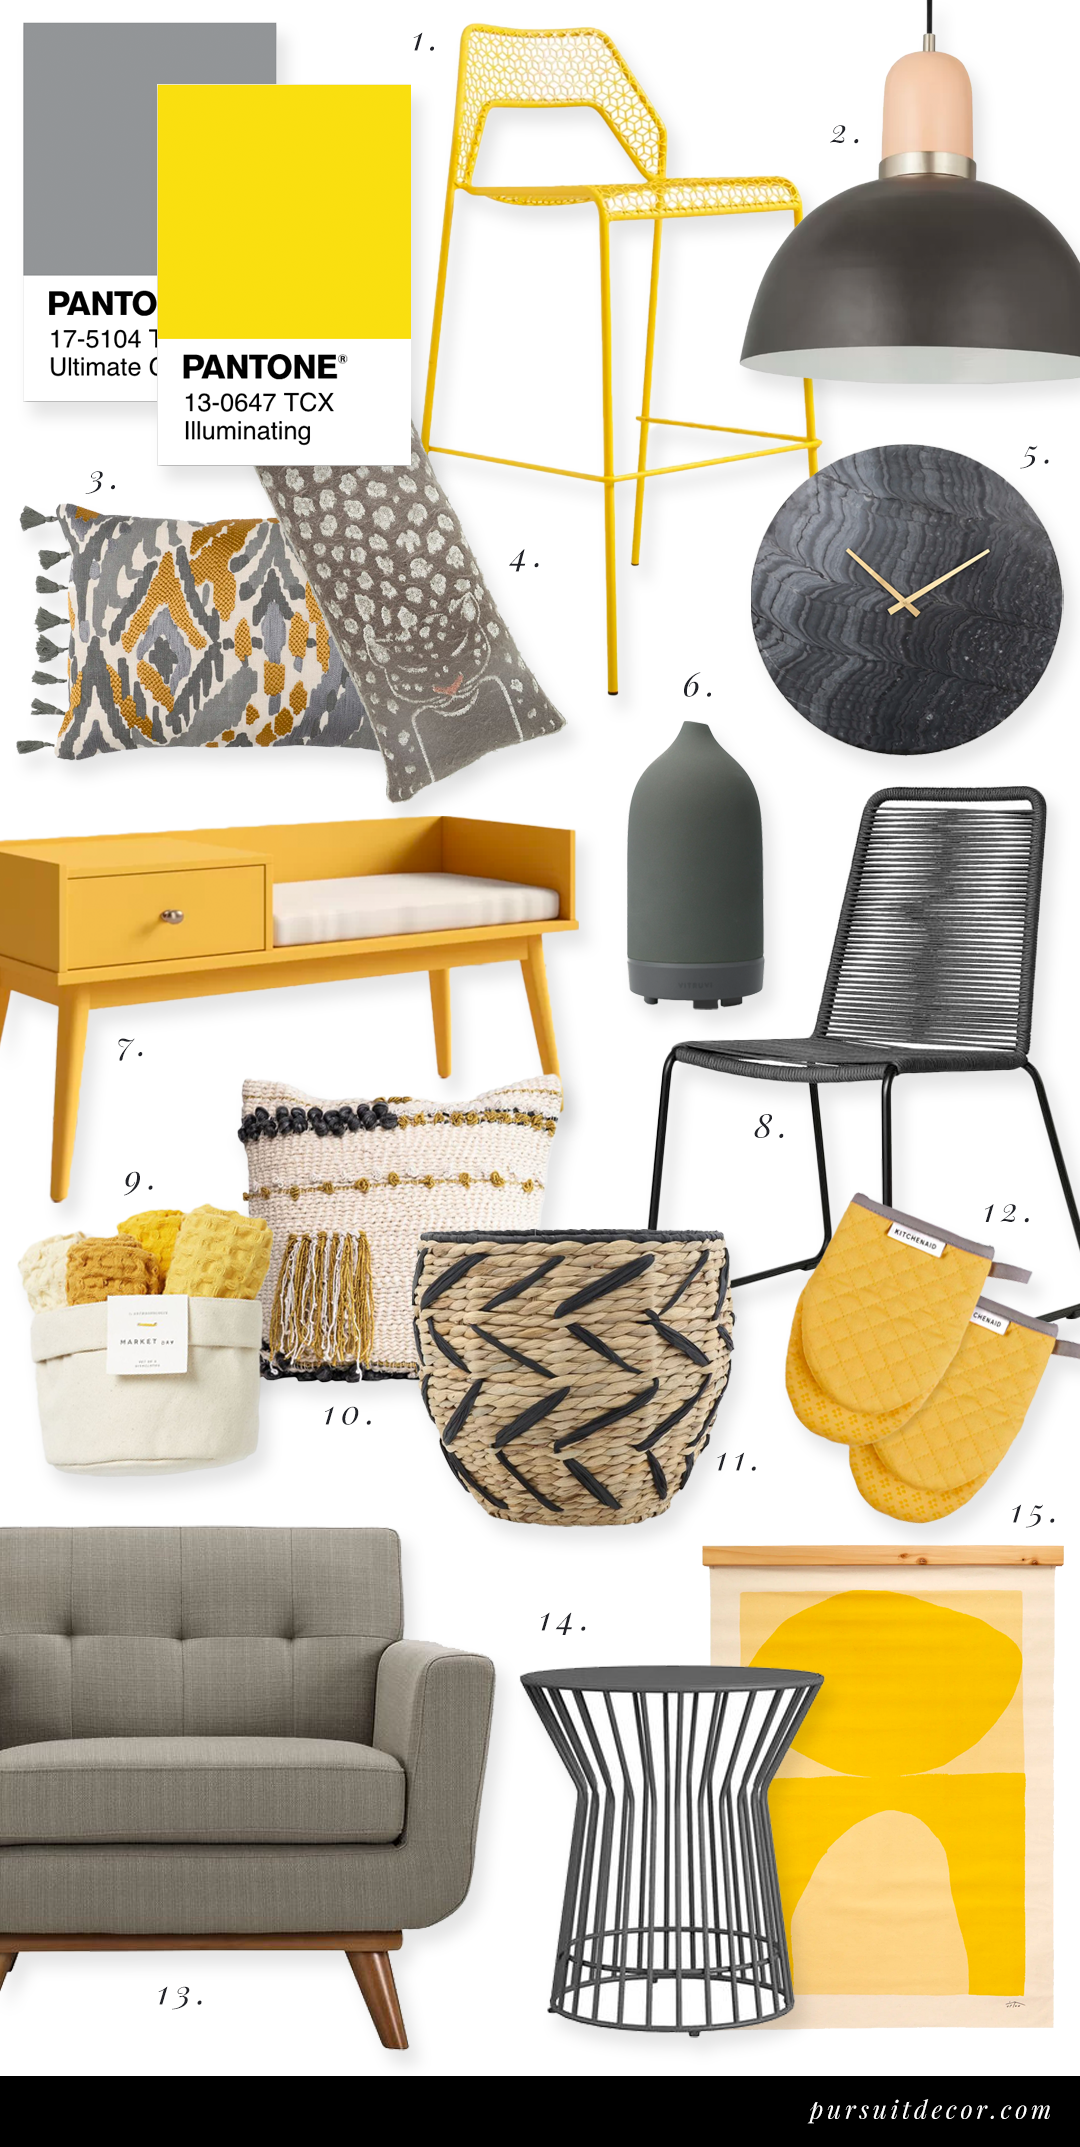 Decorating with Pantone Color of the Year 2021 - 'Illuminating' and 'Ultimate Gray', yellow and gray home decor, yellow and gray color combination #pantone #2021 #coloroftheyear